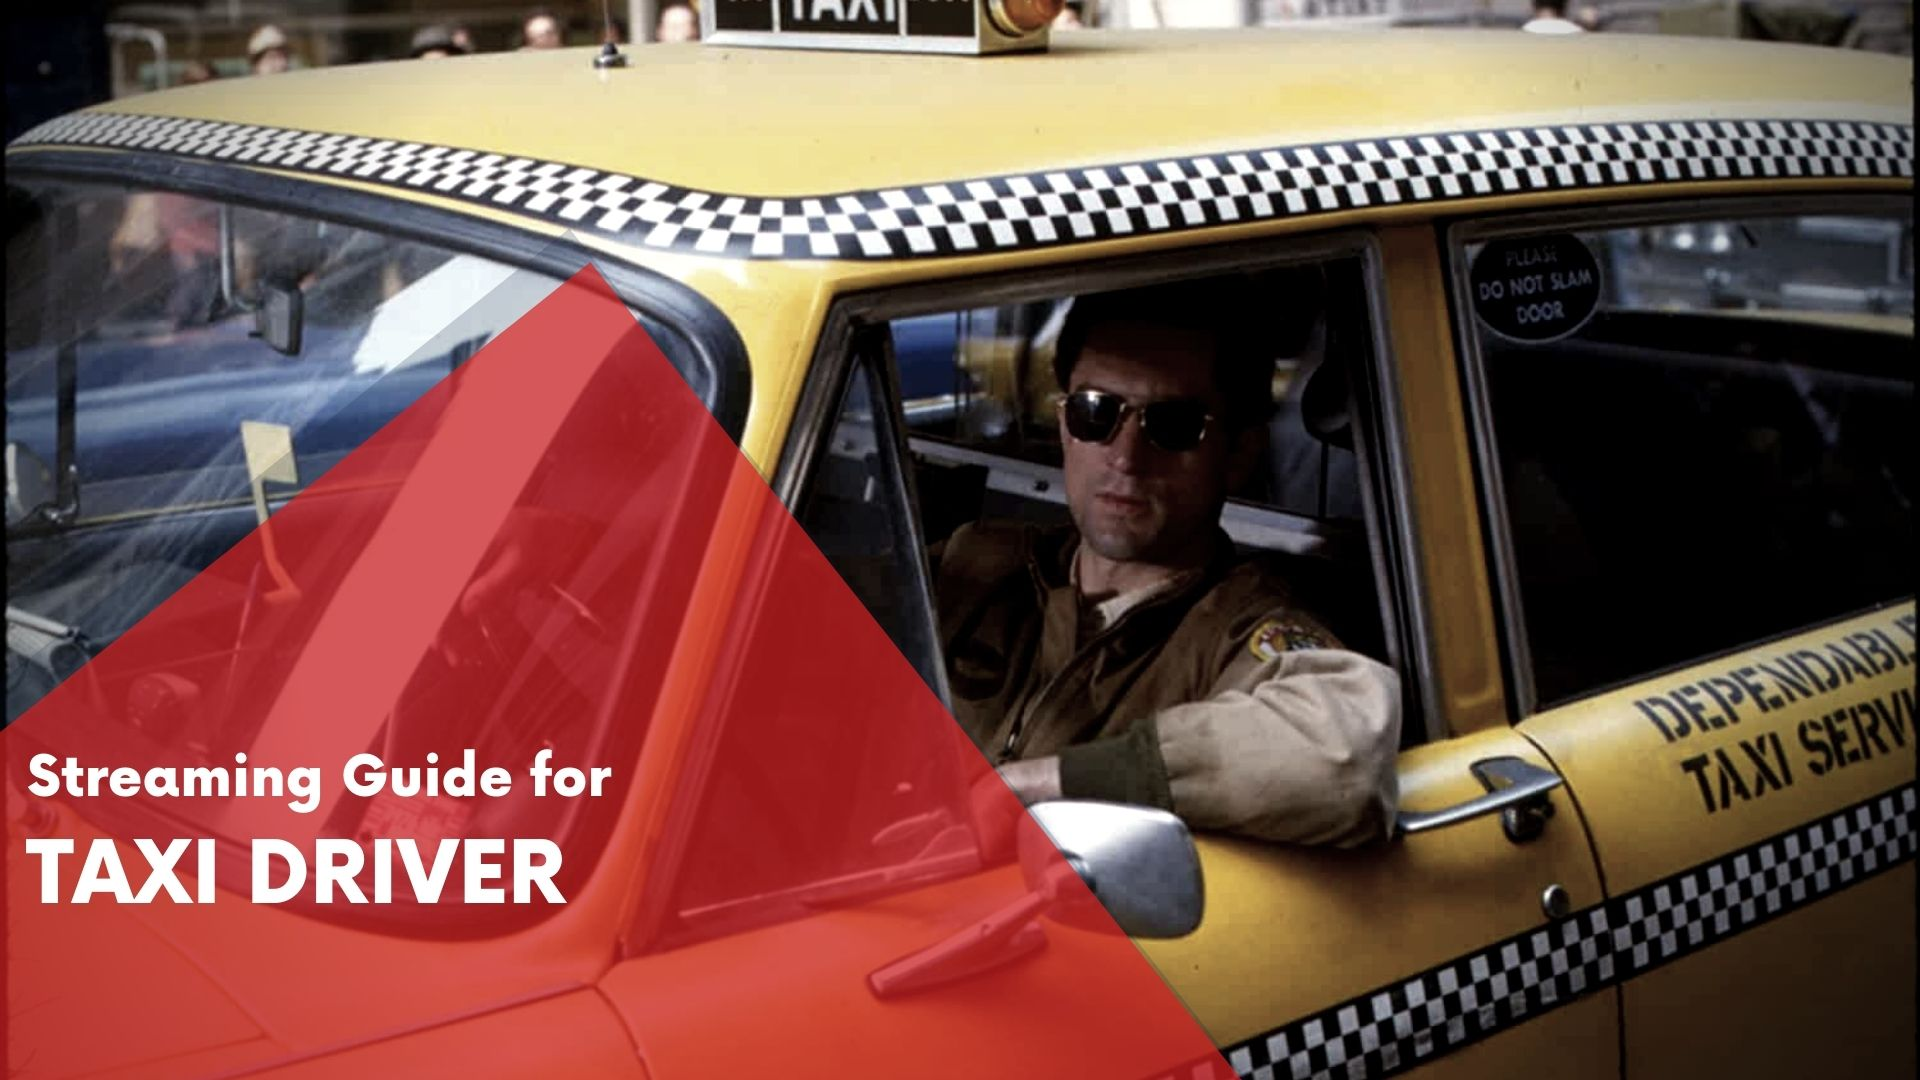 Taxi Driver Streaming Guide 1